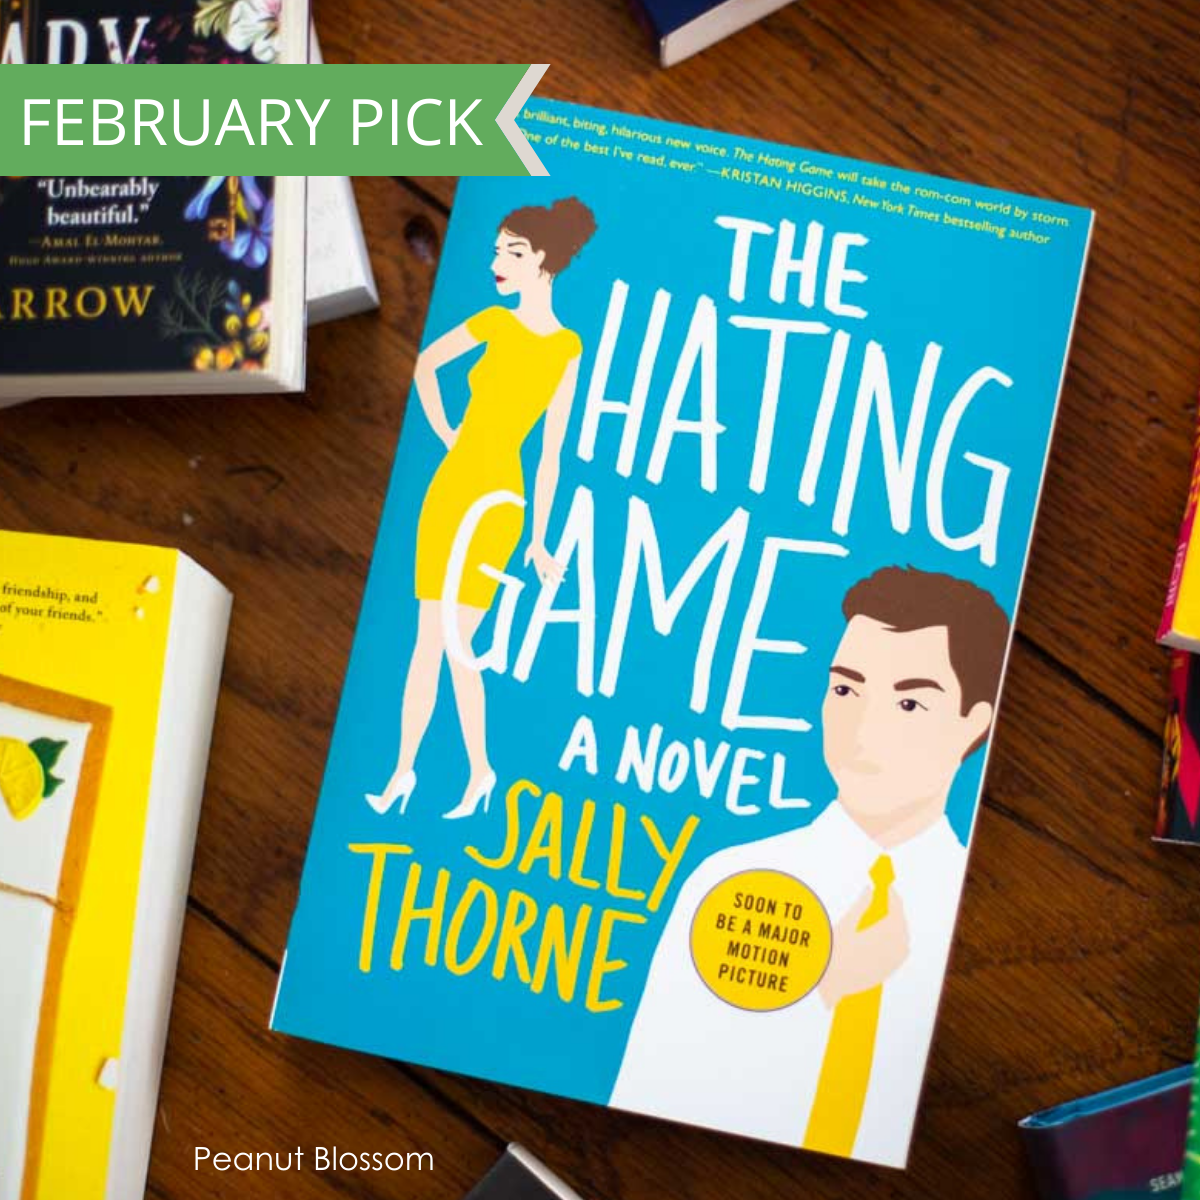 The cover of the book The Hating Game sitting on a table surrounded by other books.